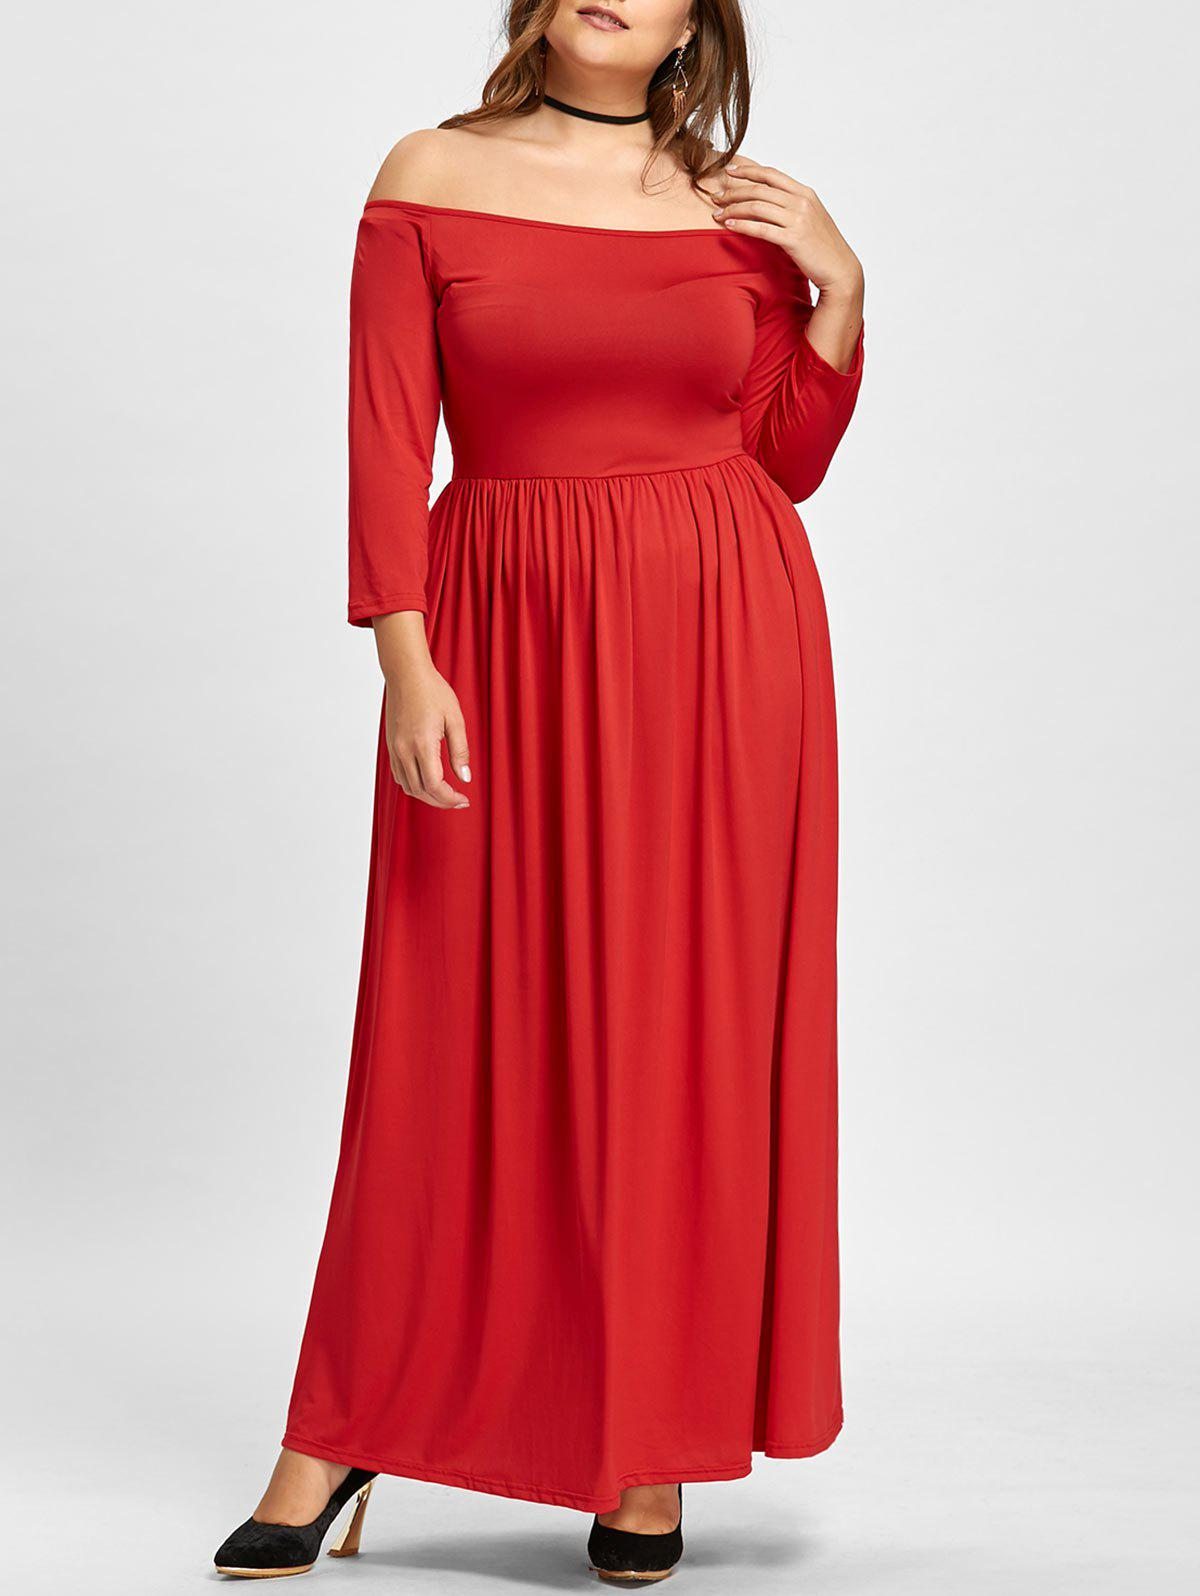 Empire Waist Plus Size Off The Shoulder Maxi Formal DressWOMEN<br><br>Size: 6XL; Color: RED; Style: Brief; Material: Cotton Blend,Polyester; Silhouette: Ball Gown; Dresses Length: Floor-Length; Neckline: Off The Shoulder; Sleeve Length: 3/4 Length Sleeves; Waist: Empire; Pattern Type: Solid Color; With Belt: No; Season: Fall,Winter; Weight: 0.5500kg; Package Contents: 1 x Dress;